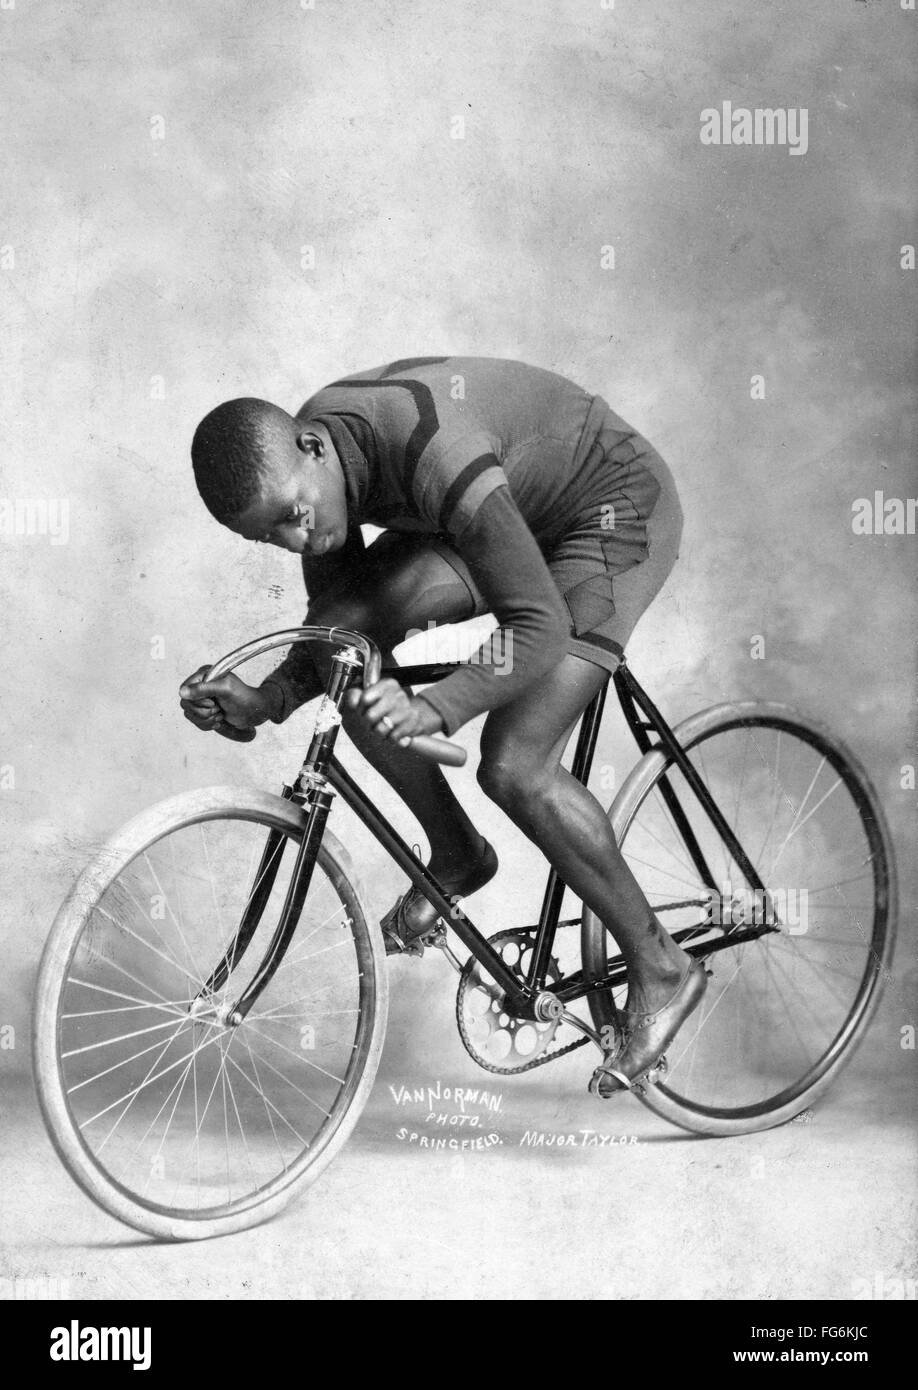 Marshall Walter 'Major' Taylor an American cyclist who won the world 1 mile (1.6 km) track cycling championship - Stock Image